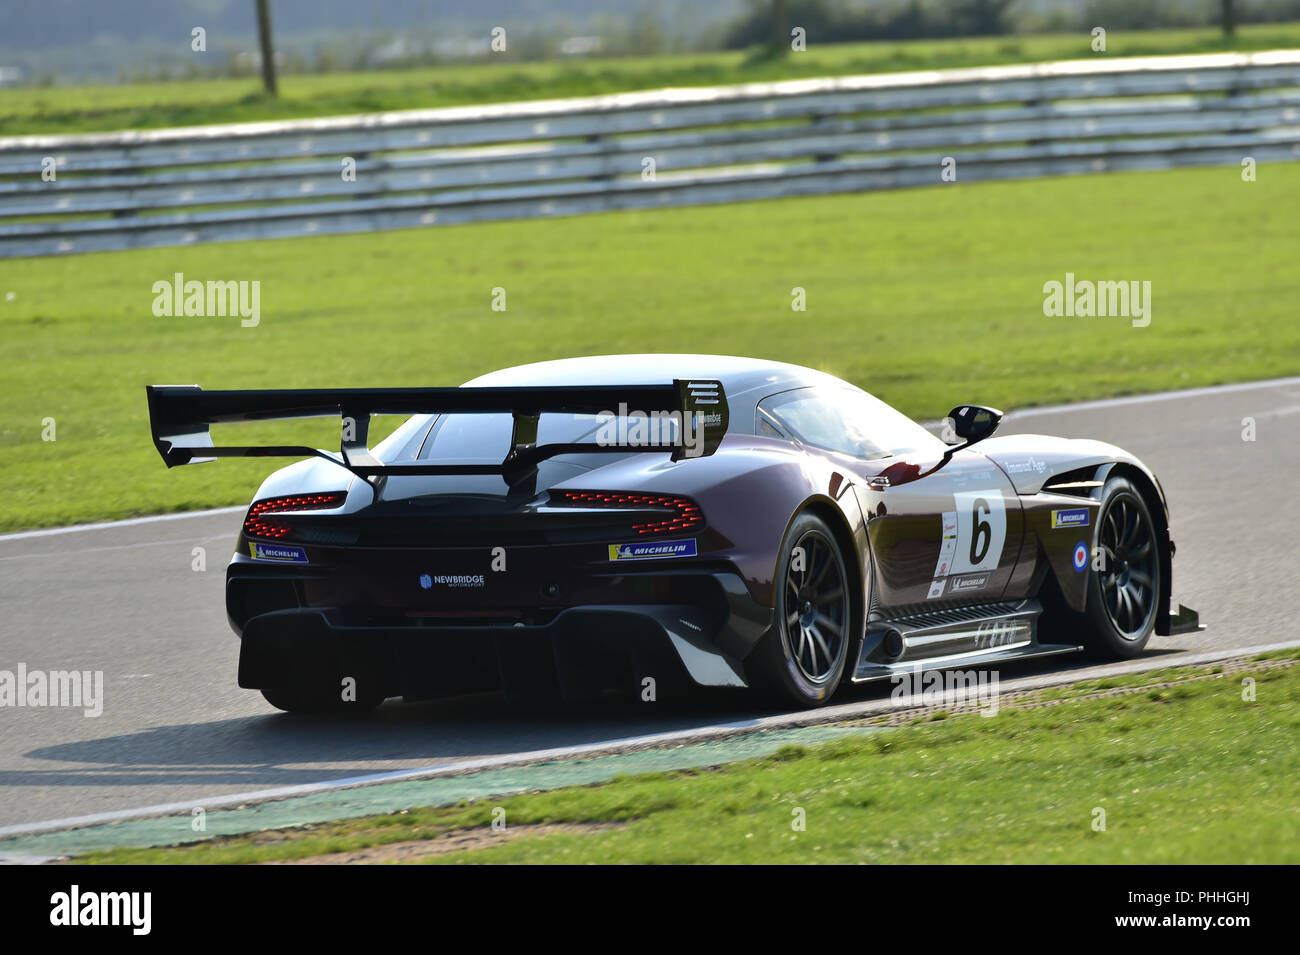 Snetterton Motor racing circuit, Snetterton, Norfolk, England, Saturday 1st September 2018. Gleb Stepanov and Stephen Tomkins, Aston Martin Vulcan, in the Aston Martin Owners Club Race (AMOCR)  Aston Martin GT Challenge event. The much applauded Aston Martin Vulcan, a £2M+ track only car, made its UK race debut at the Aston Martin Owners Club Race meeting at Snetterton in Norfolk on Saturday 1st September. One of only 27 such vehicles it took the chequered flag in the days Aston Martin GT Challenge with drivers Gleb Stepanov and Stephen Tomkins taking stints at the wheel. Chris McEvoy/Alamy Li - Stock Image